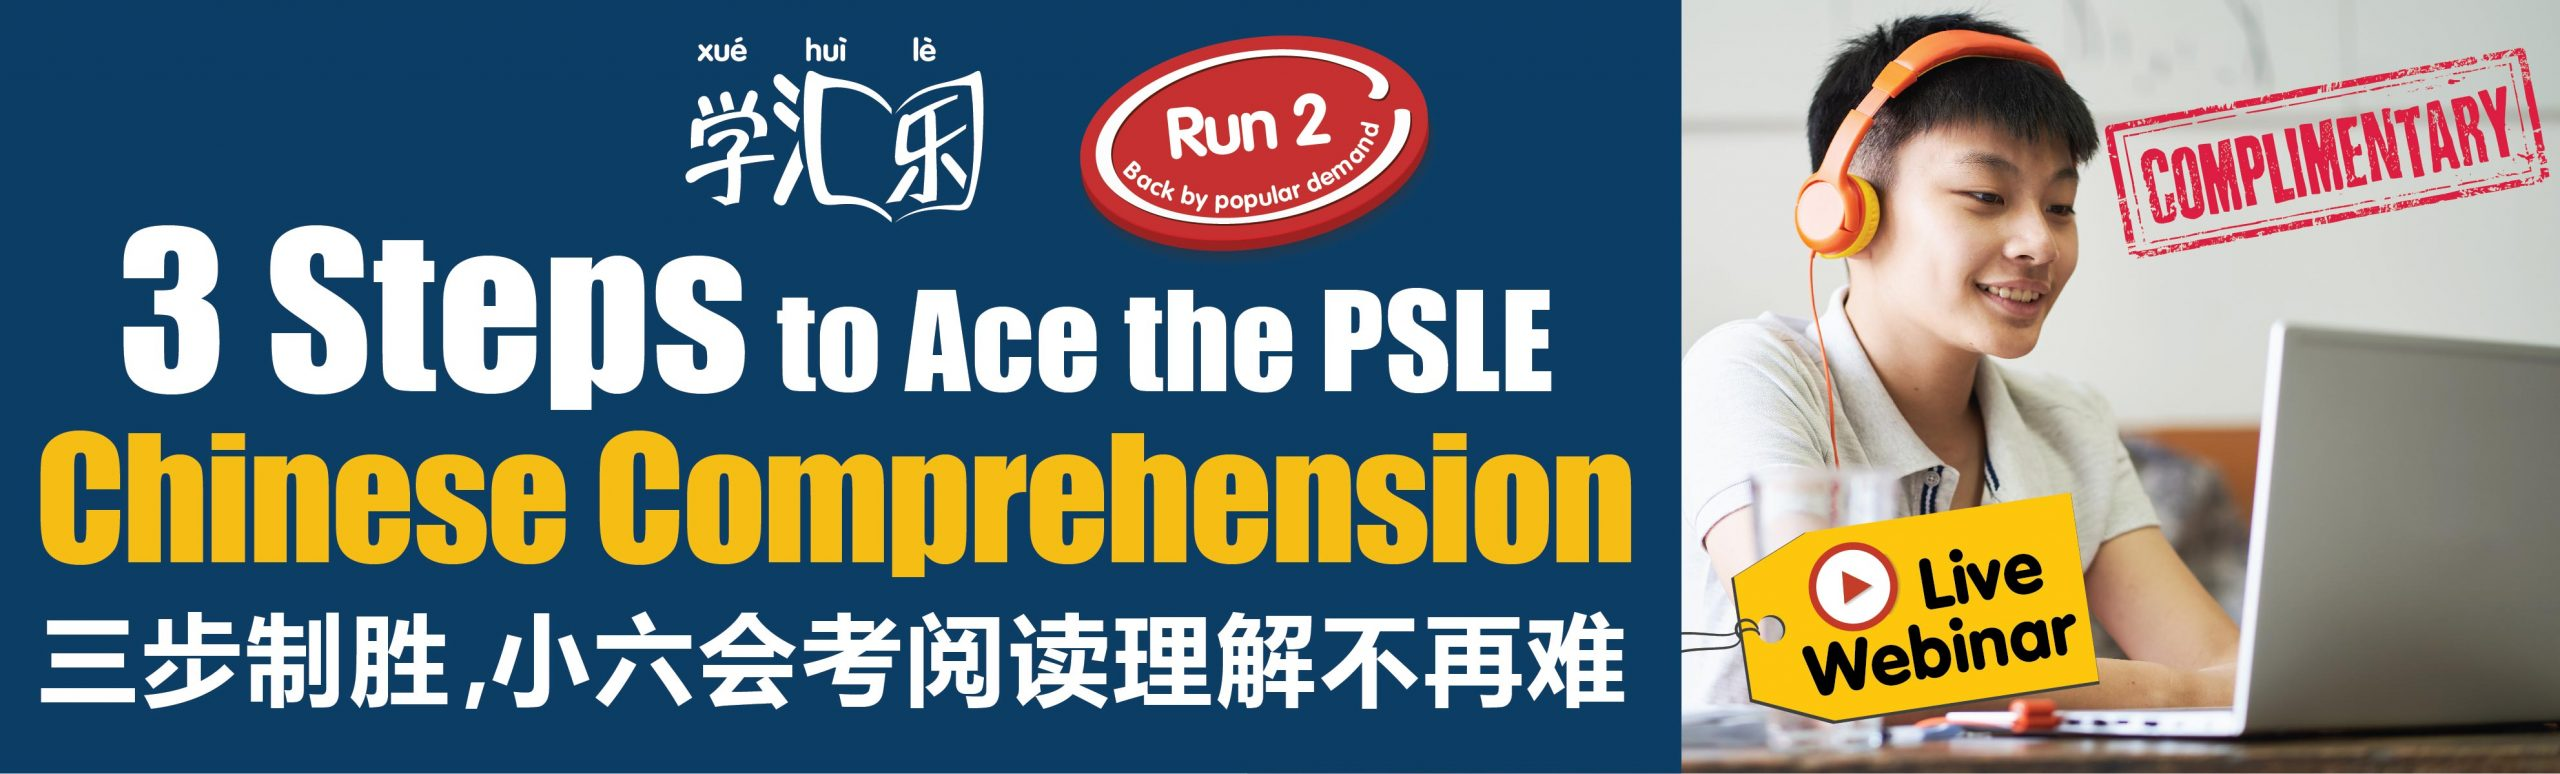 3 Steps to Ace the PSLE Chinese Comprehension (Run 2) Mind Stretcher